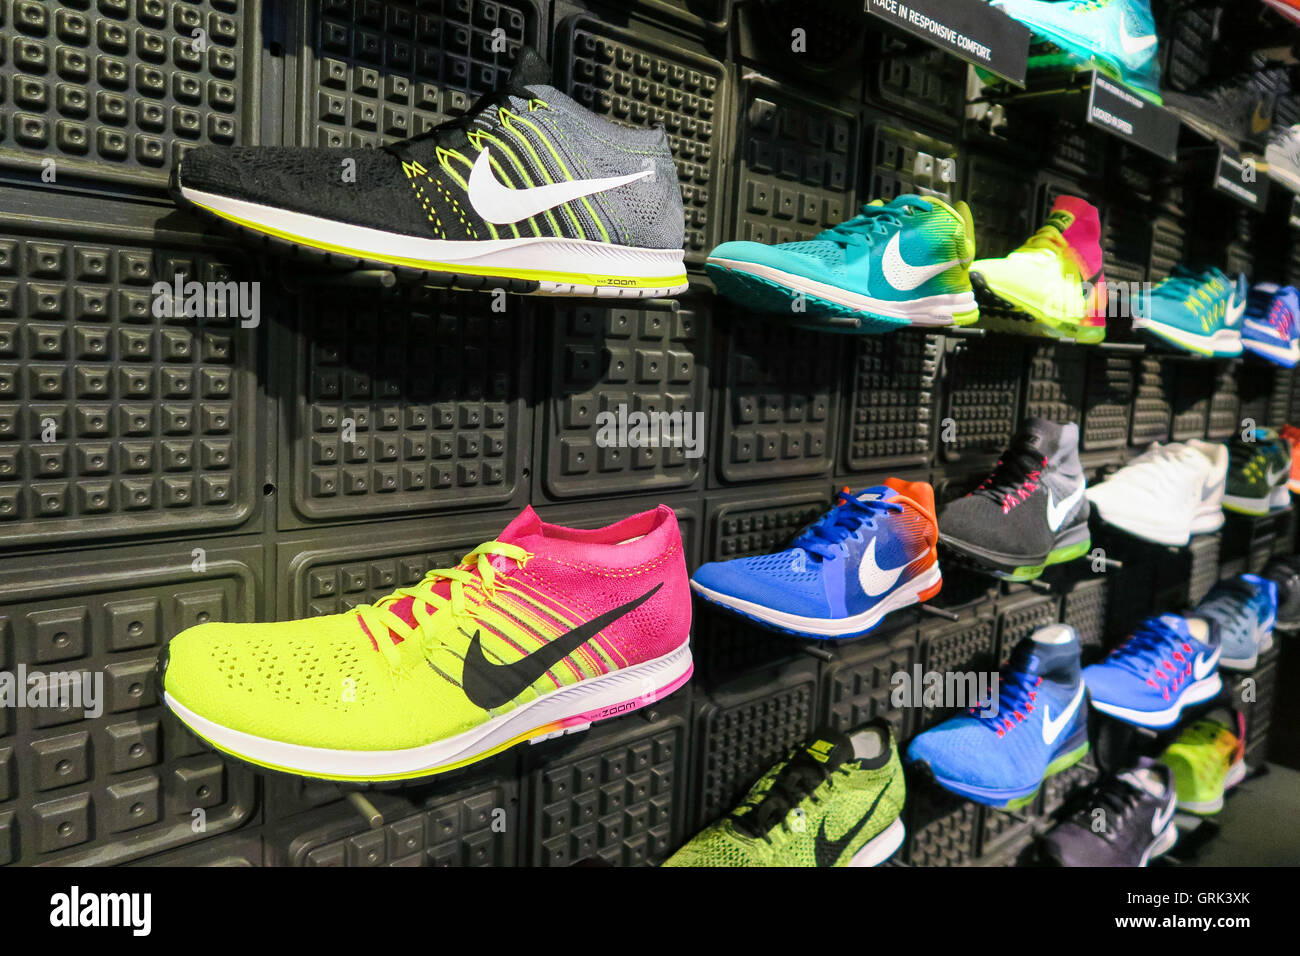 22dd7d4c6545b Nike Shoe Display, Niketown Athletic Apparel Store, 6 East 57th Street, NYC